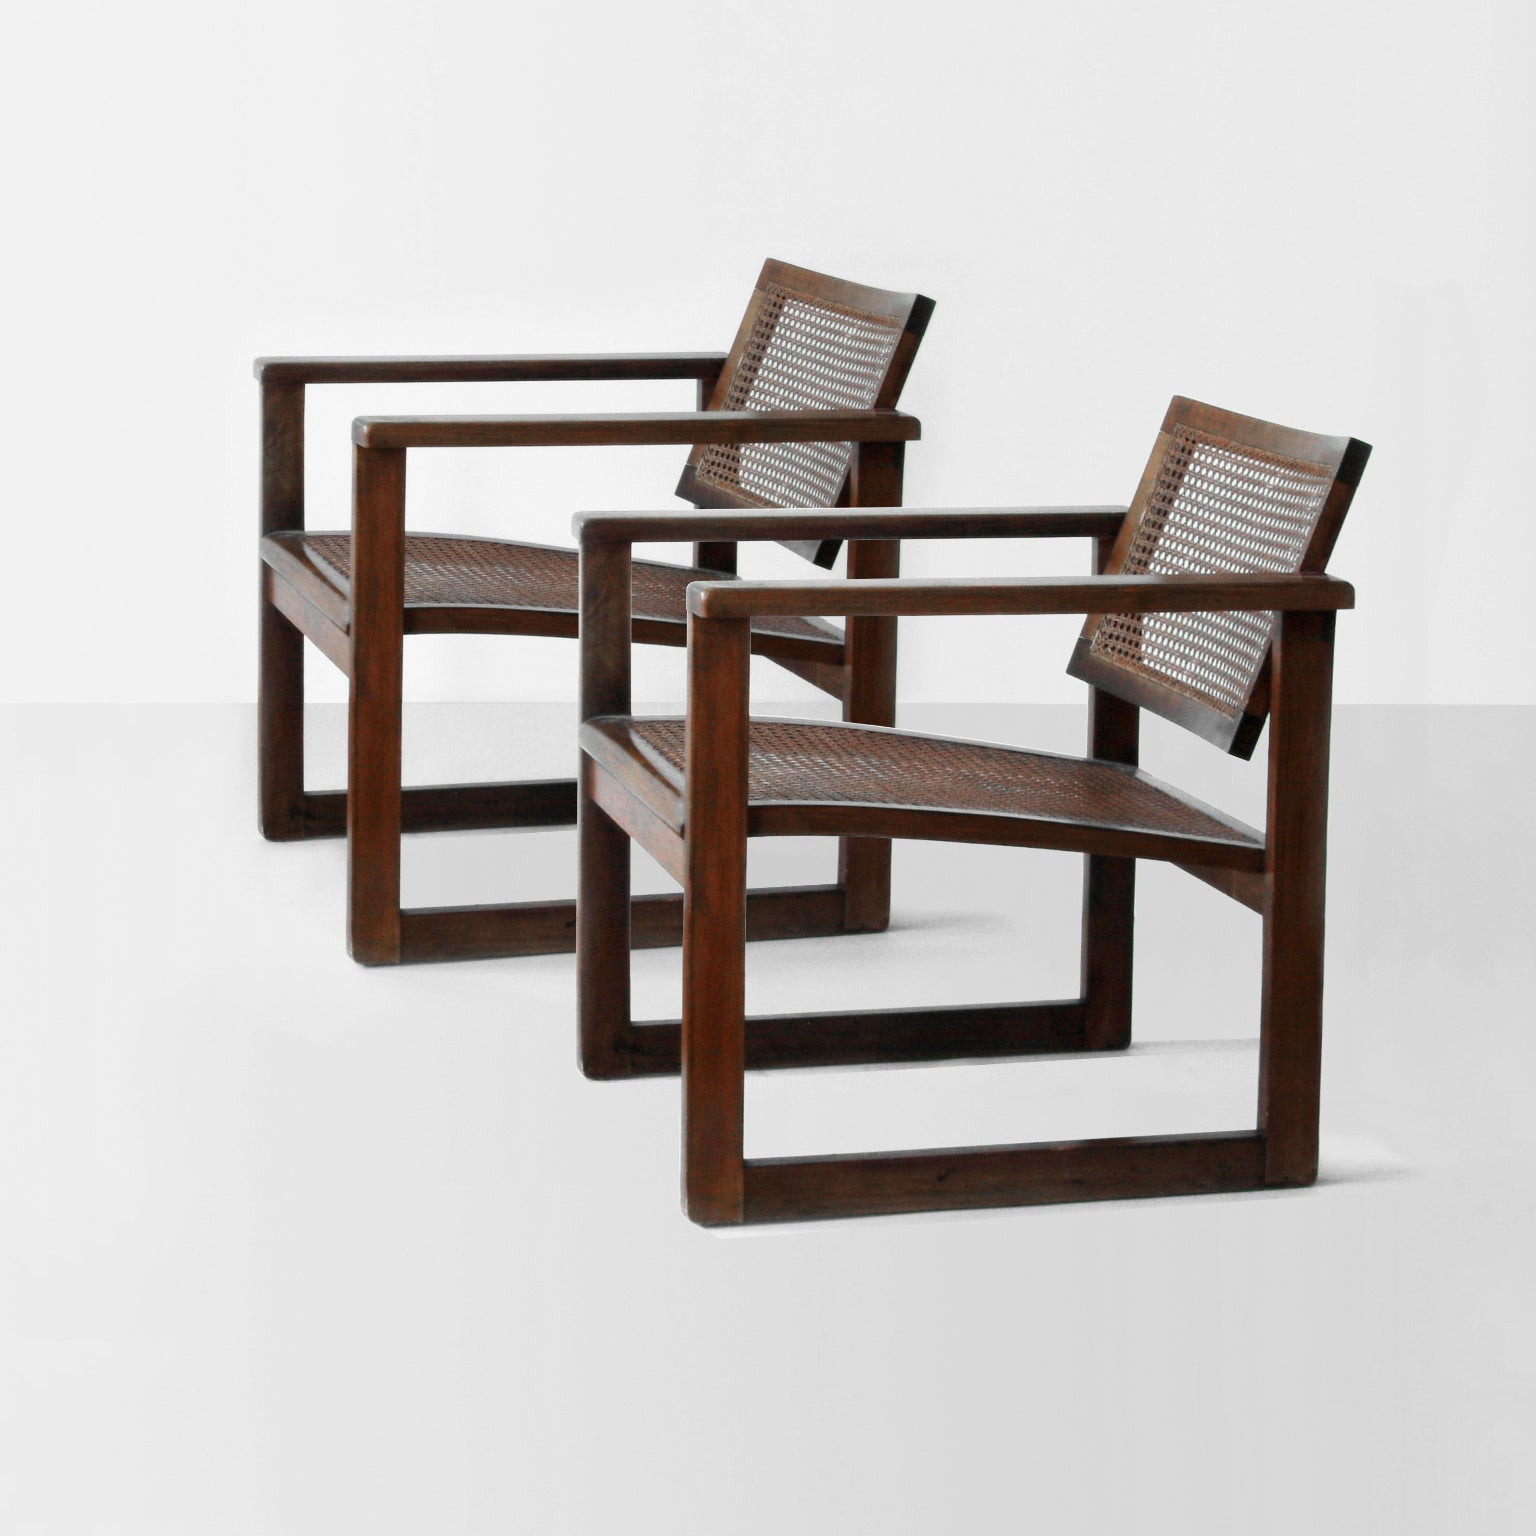 Armlehnstuhl Modern Bauhaus Wooden Armchairs Pair By Peter Keler, Manufactured By Albert Walde, 1930 For Sale At 1stdibs